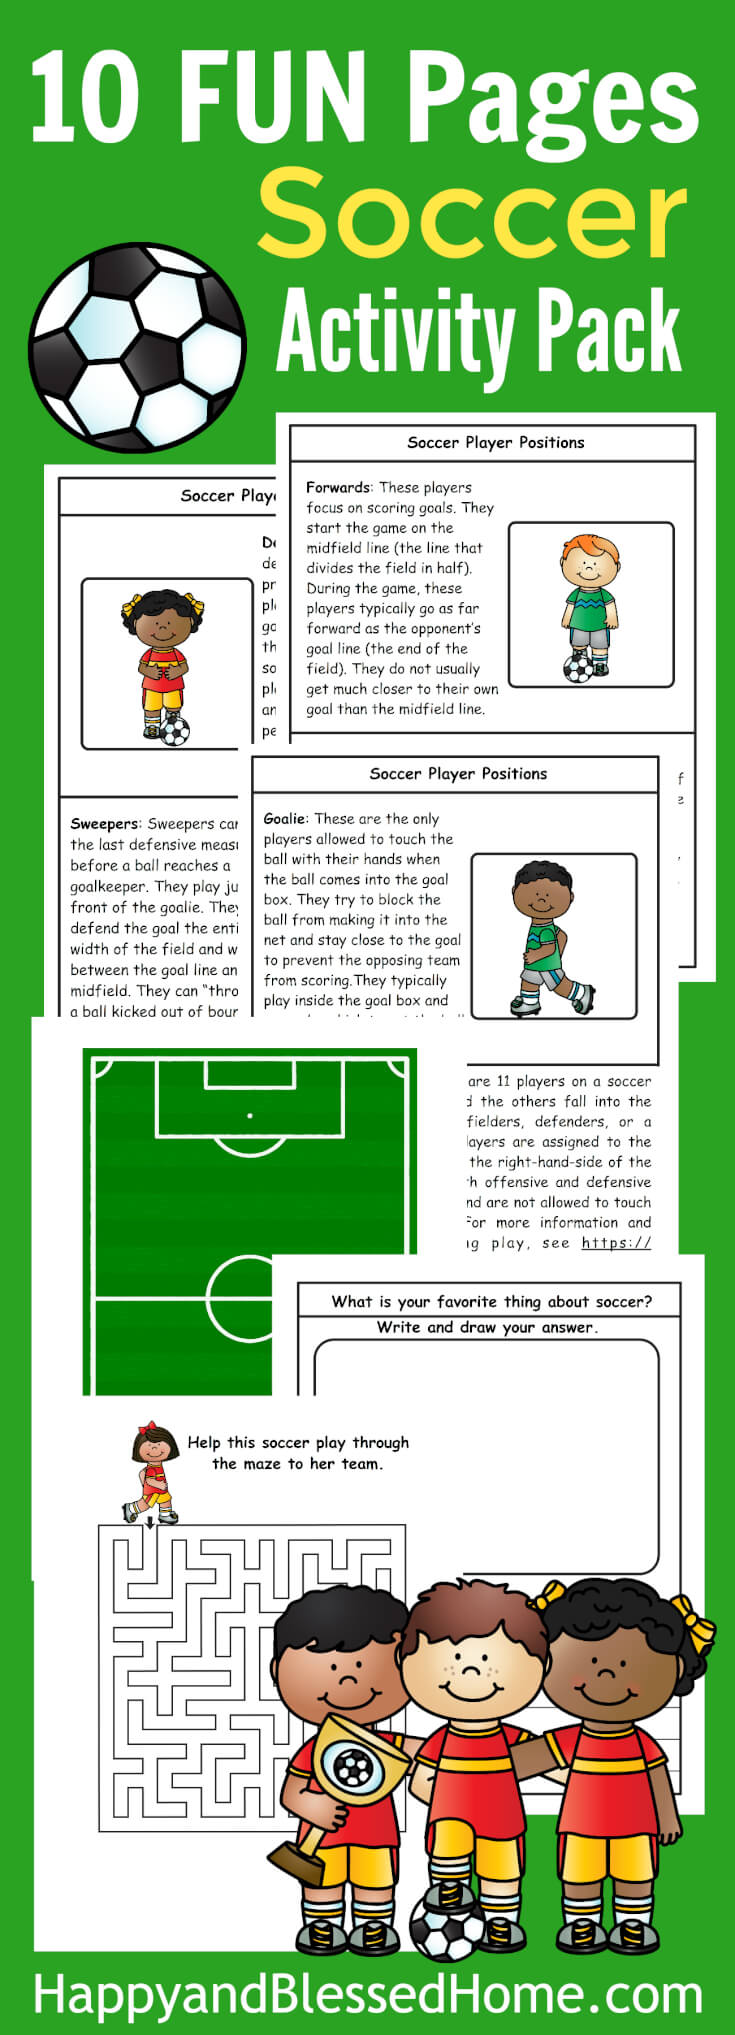 10 FUN Pages Soccer Activity Pack